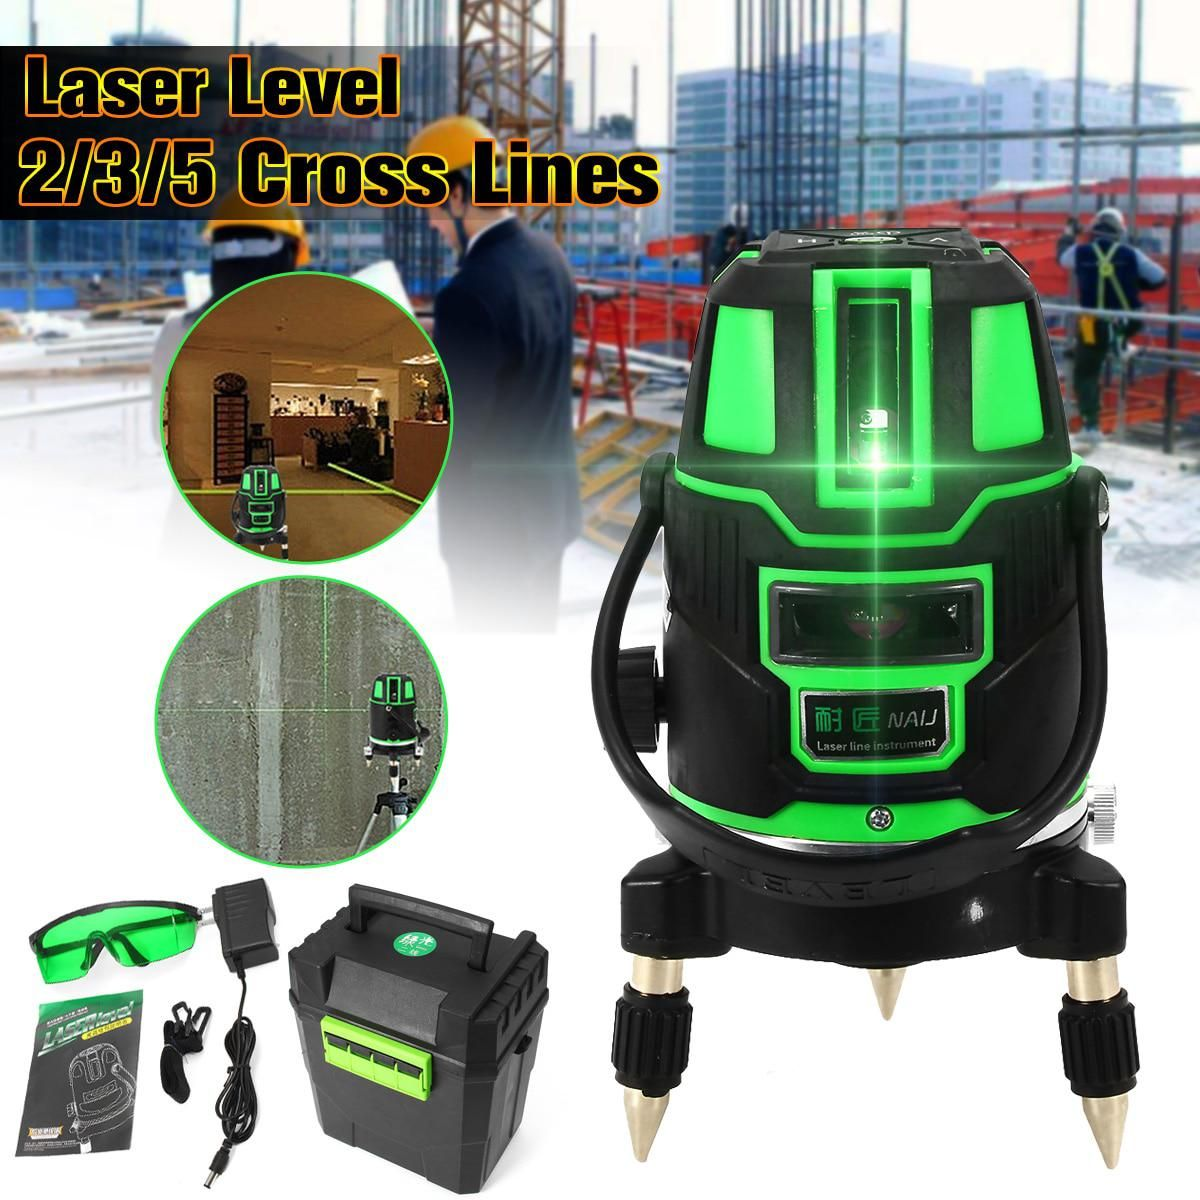 Cross Lines Self Leveling 360 Rotary Measure Tool Green Laser Level 2 3 5 Set Us Plug Radius Indoor Outdoor Alternating Direct Laser Levels Green Laser Rotary